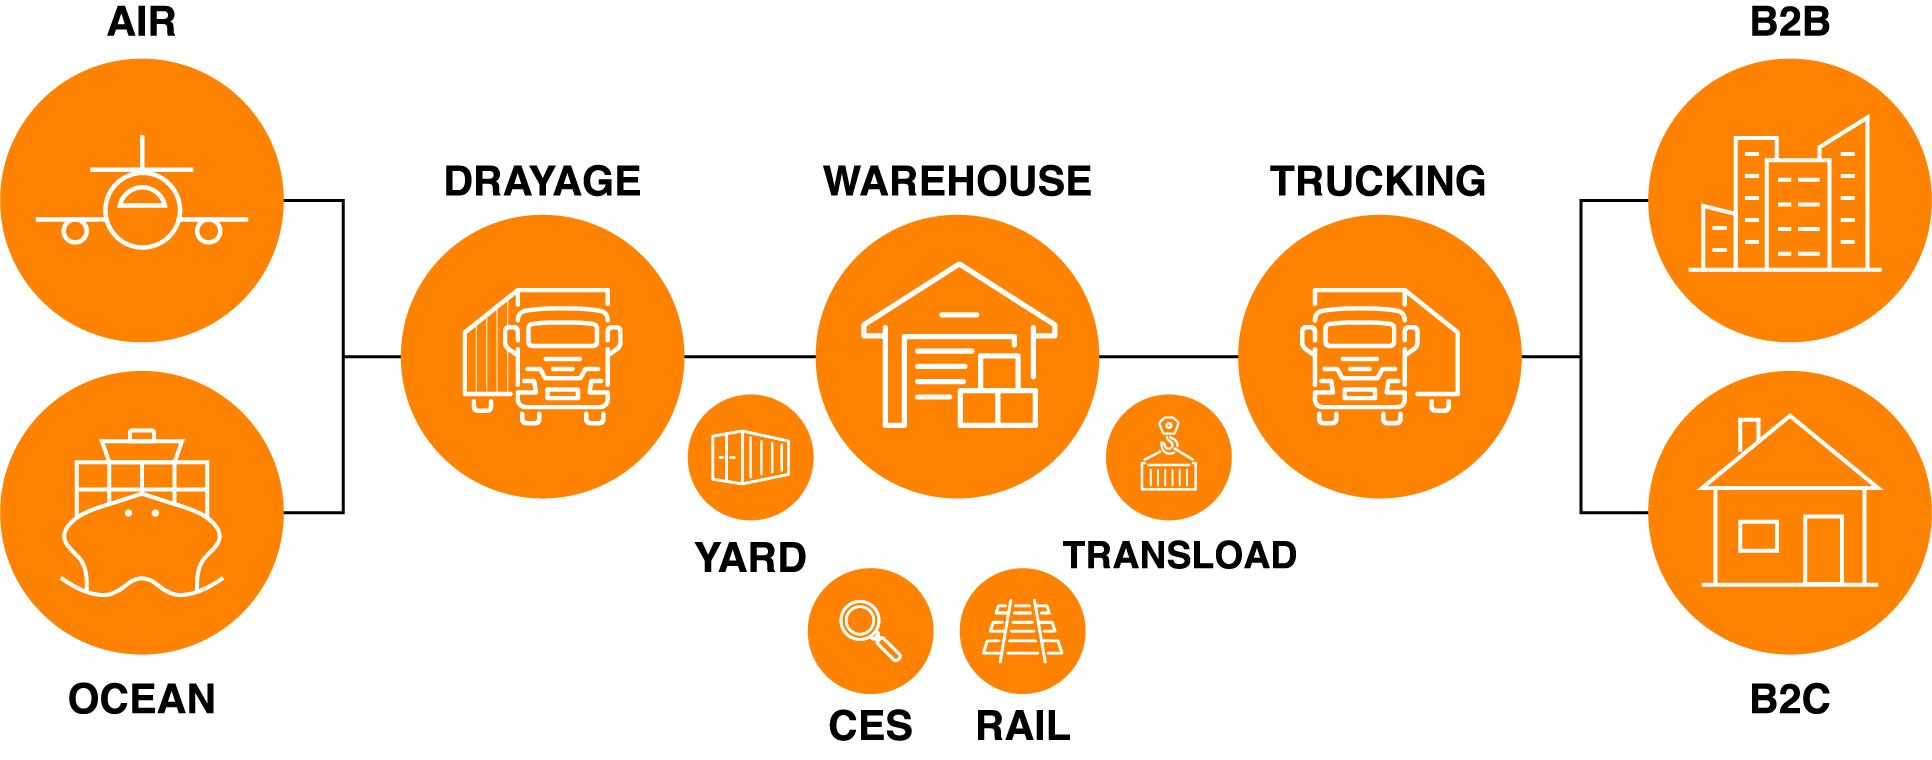 Supply Chain Icon Diagram Just Icons-v7-01